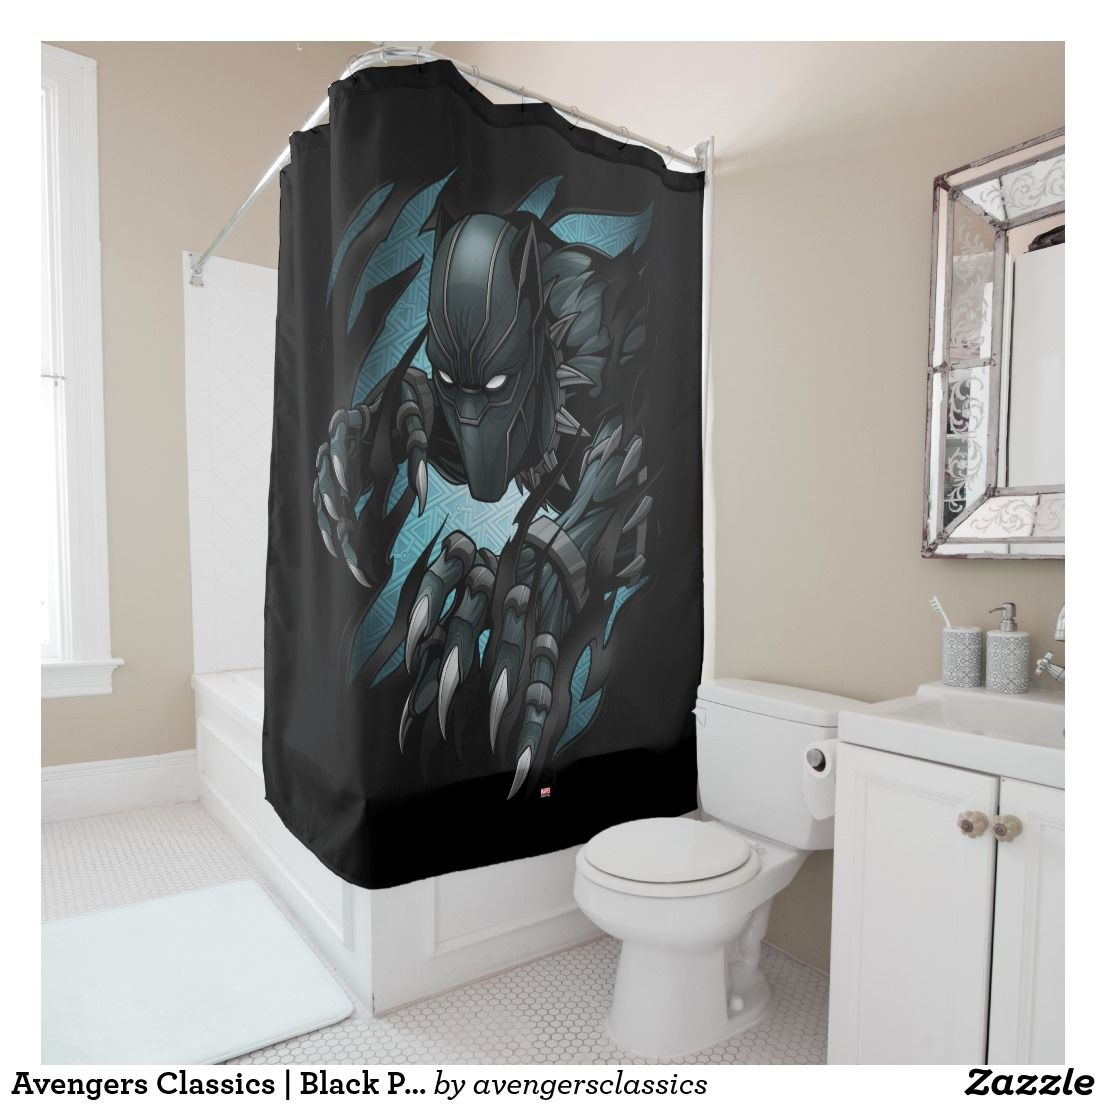 Avengers Classics Black Panther Tearing Through Shower Curtain